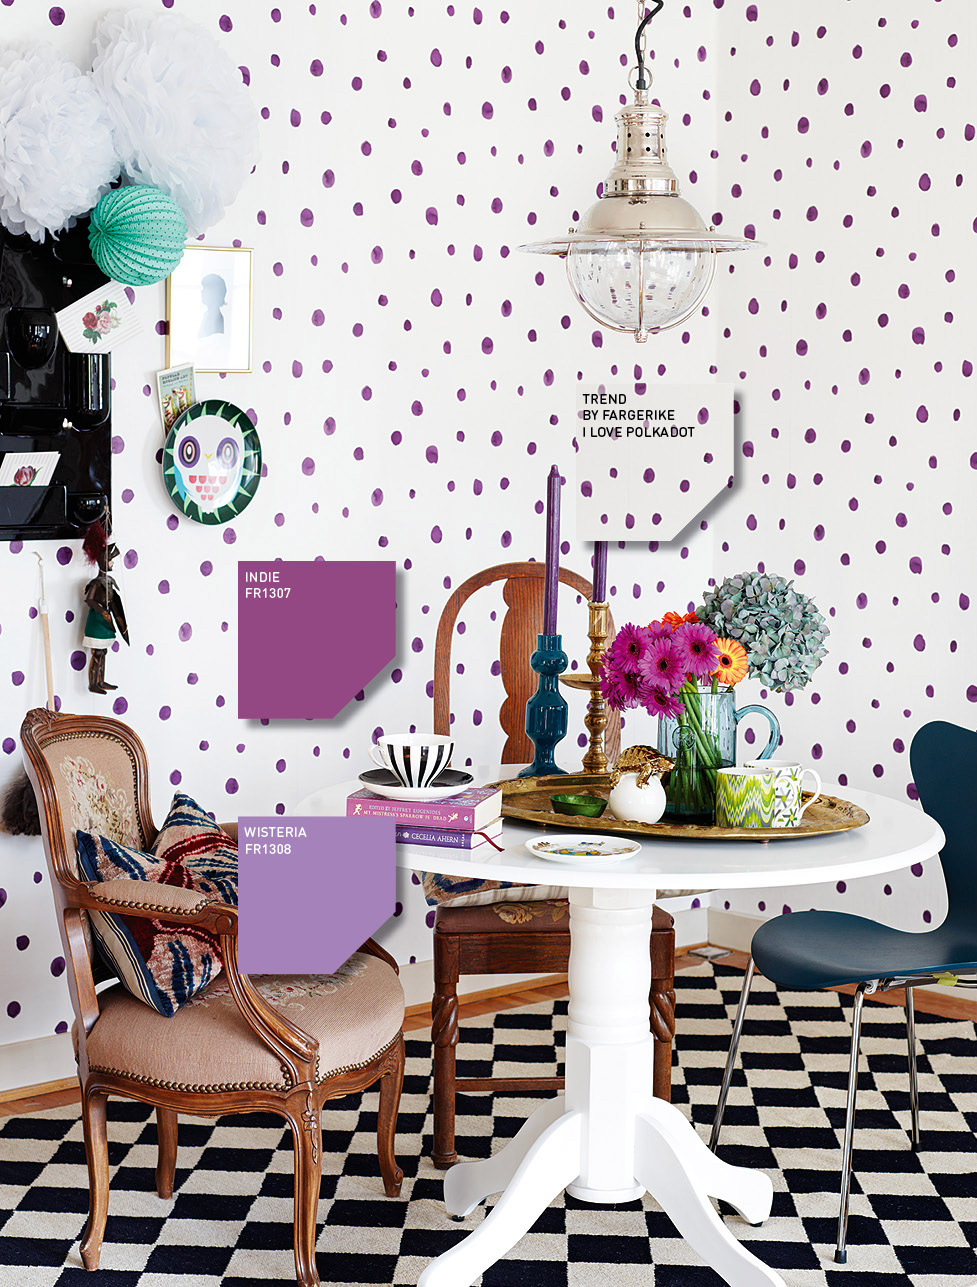 The wallpaper is definitely playful and bold A perfect addition to 977x1287